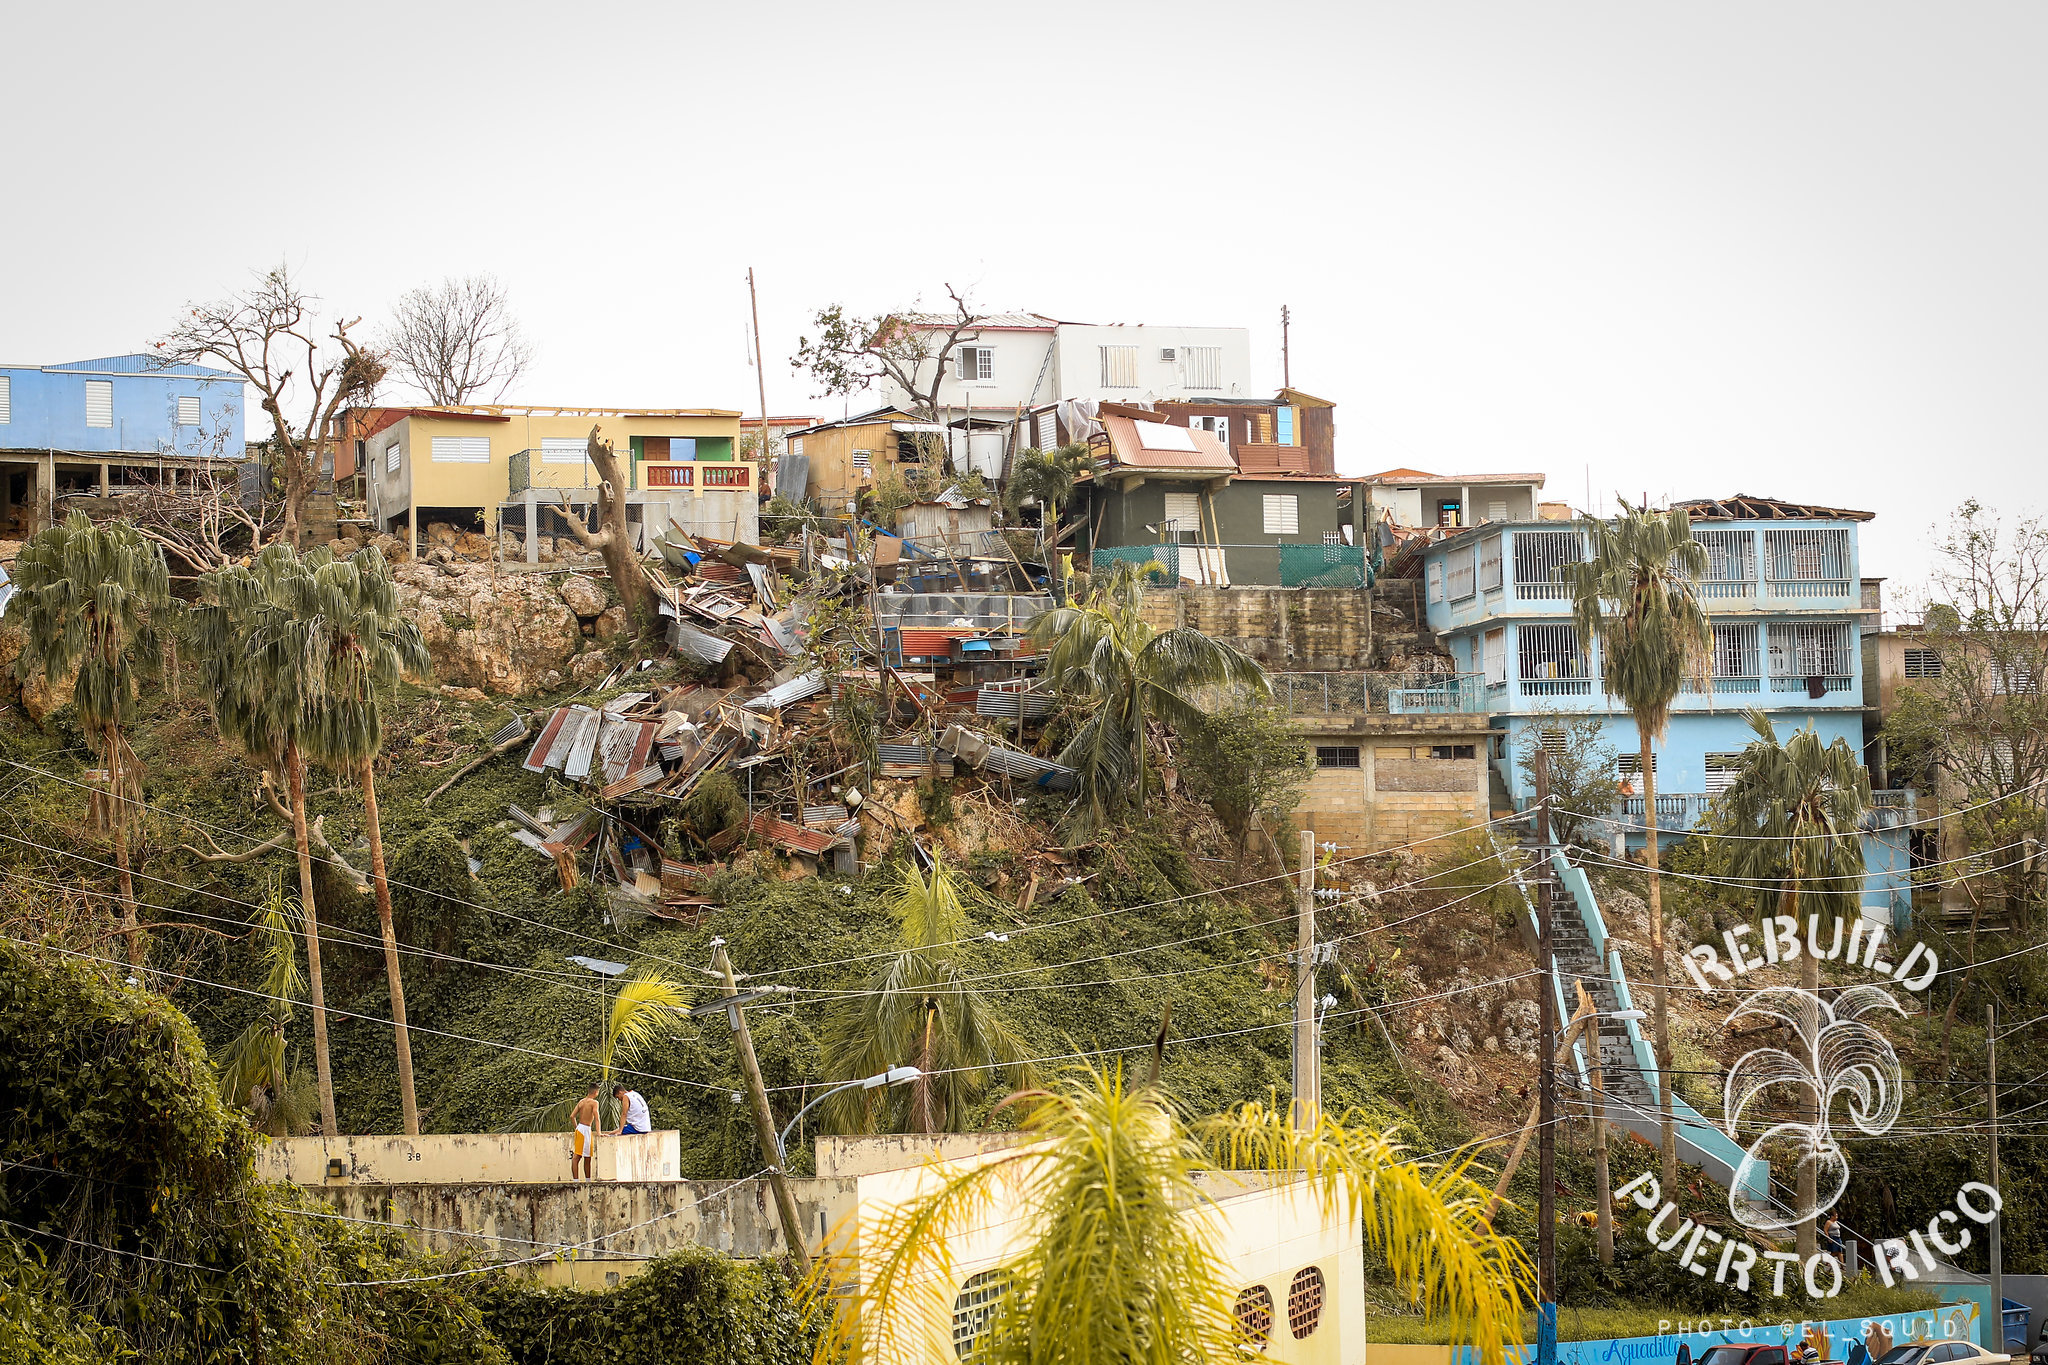 Entire neighborhoods destroyed. People's lives changed forever. // Photo by Anthony Dooley